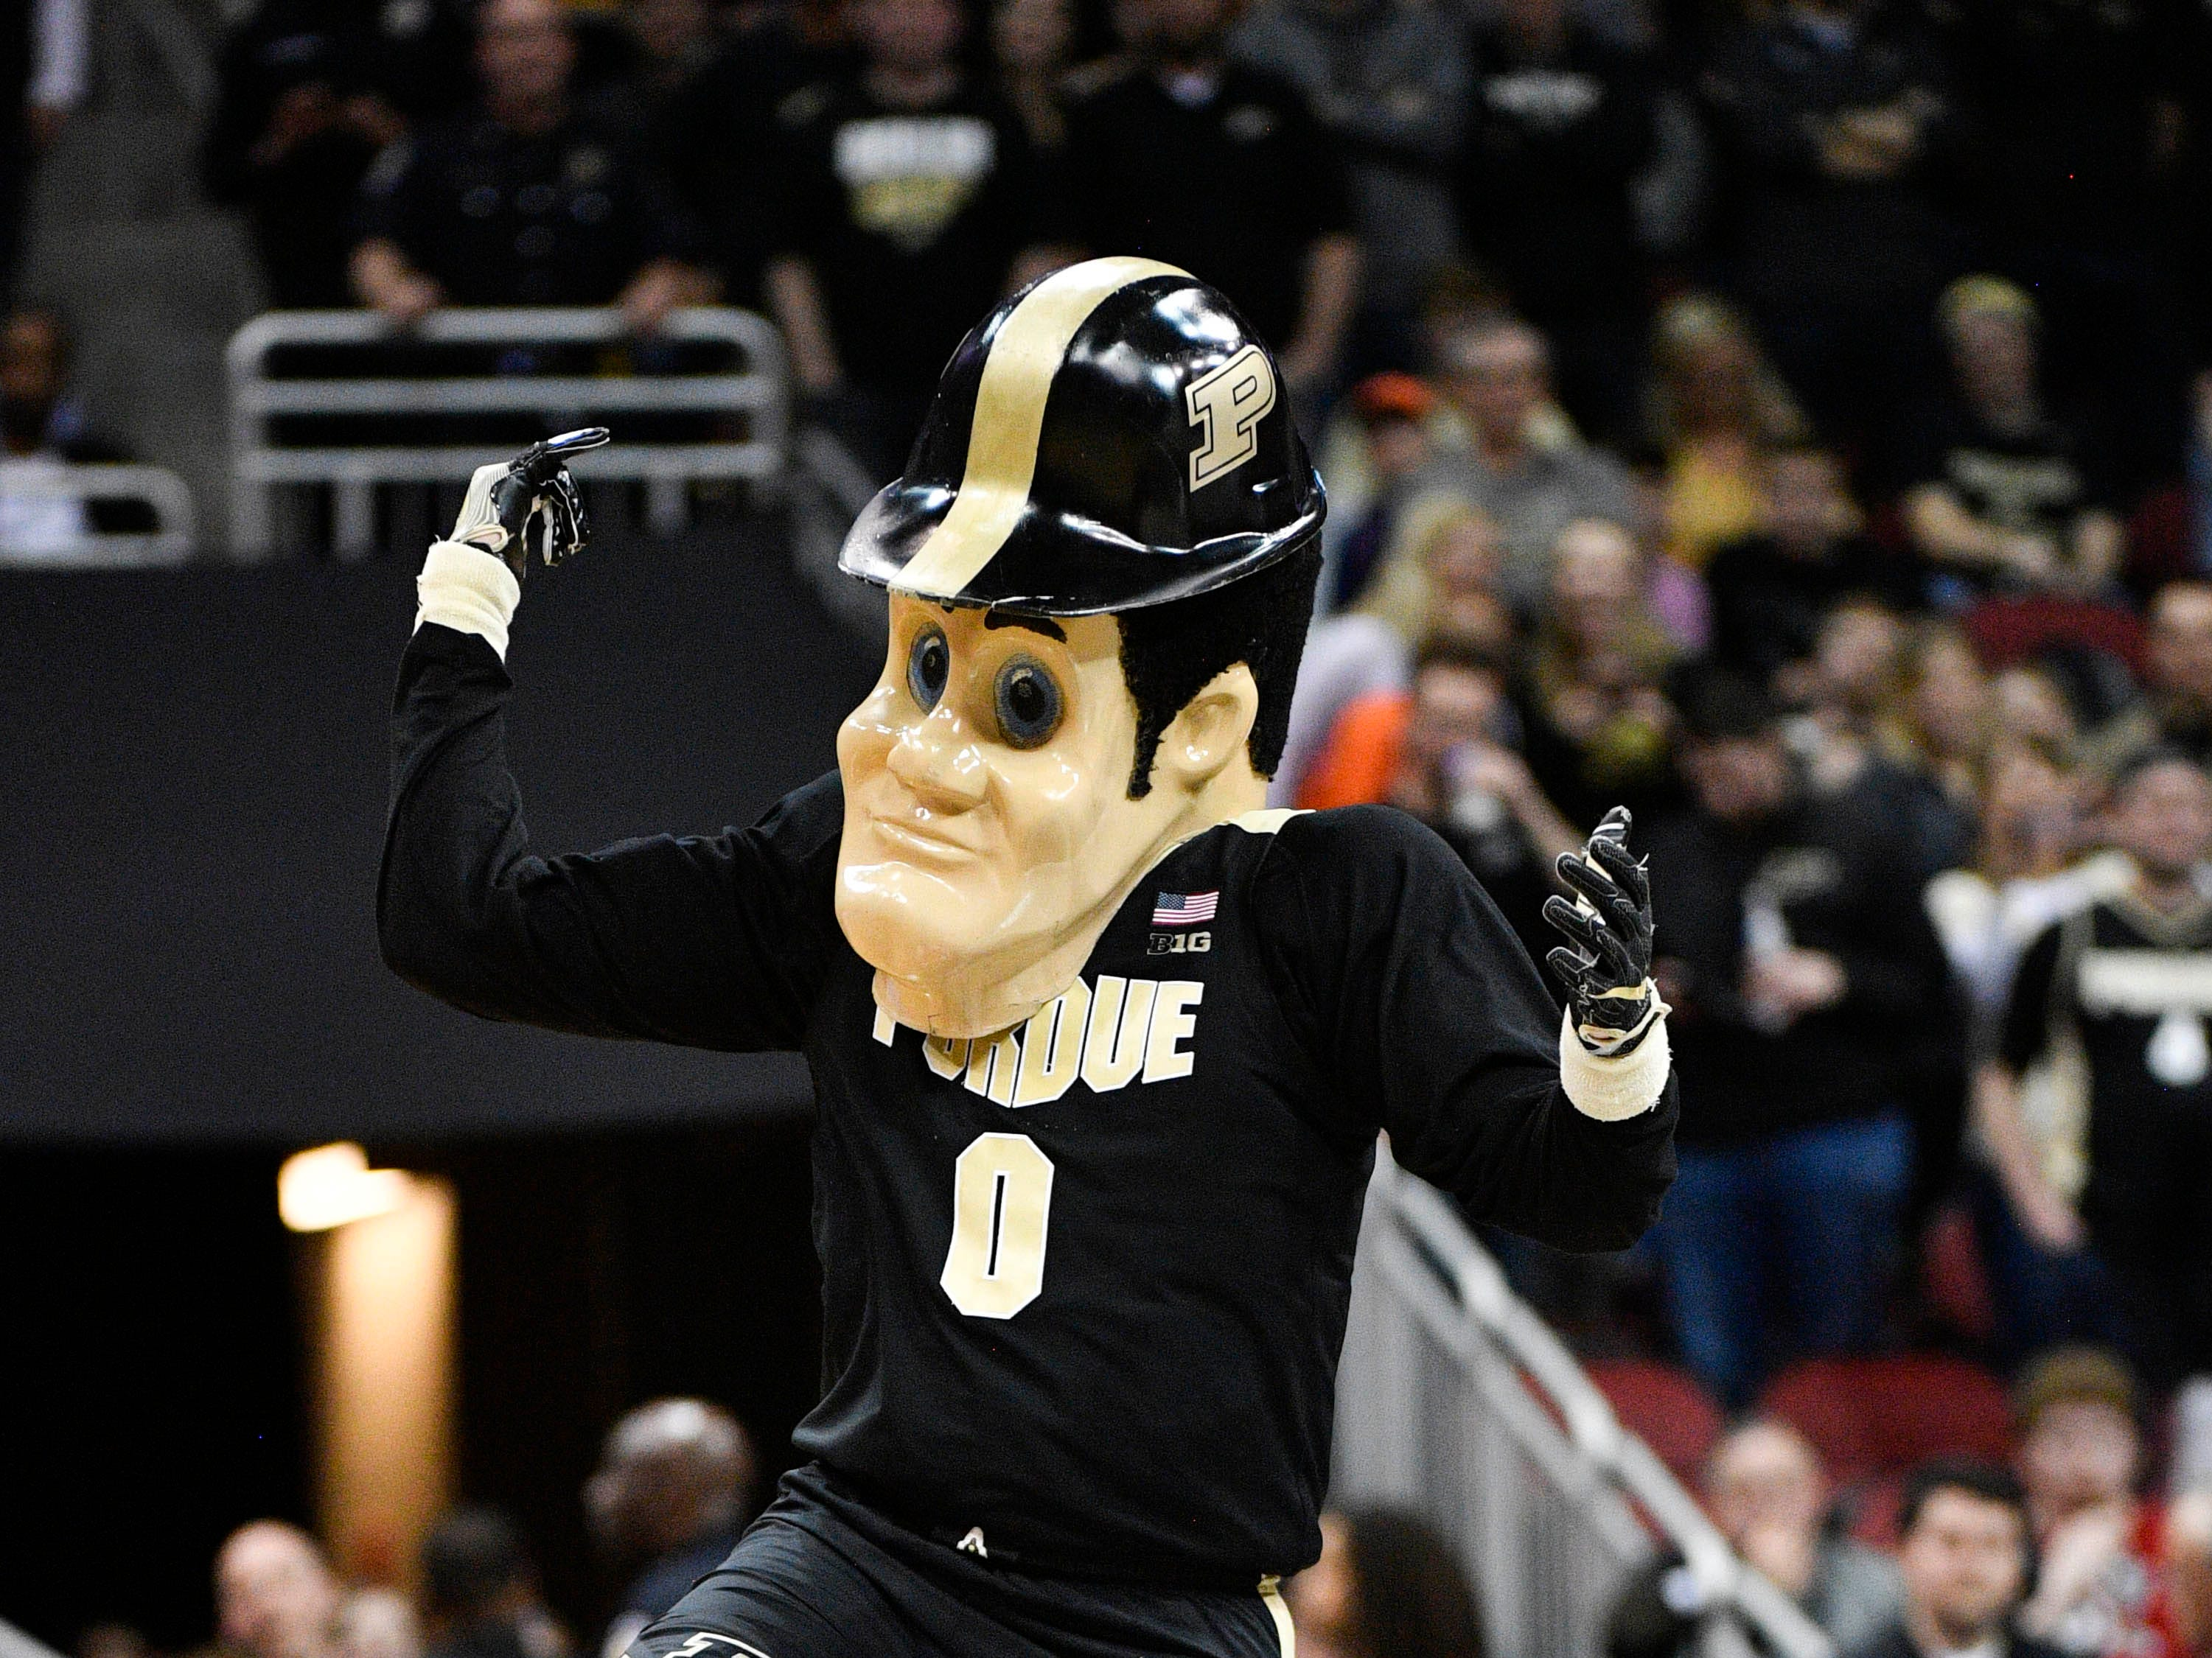 Mar 30, 2019; Louisville, KY, United States; Purdue Boilermakers mascot performs during the first half in the championship game against the Virginia Cavaliers of the south regional of the 2019 NCAA Tournament at KFC Yum Center. Mandatory Credit: Jamie Rhodes-USA TODAY Sports